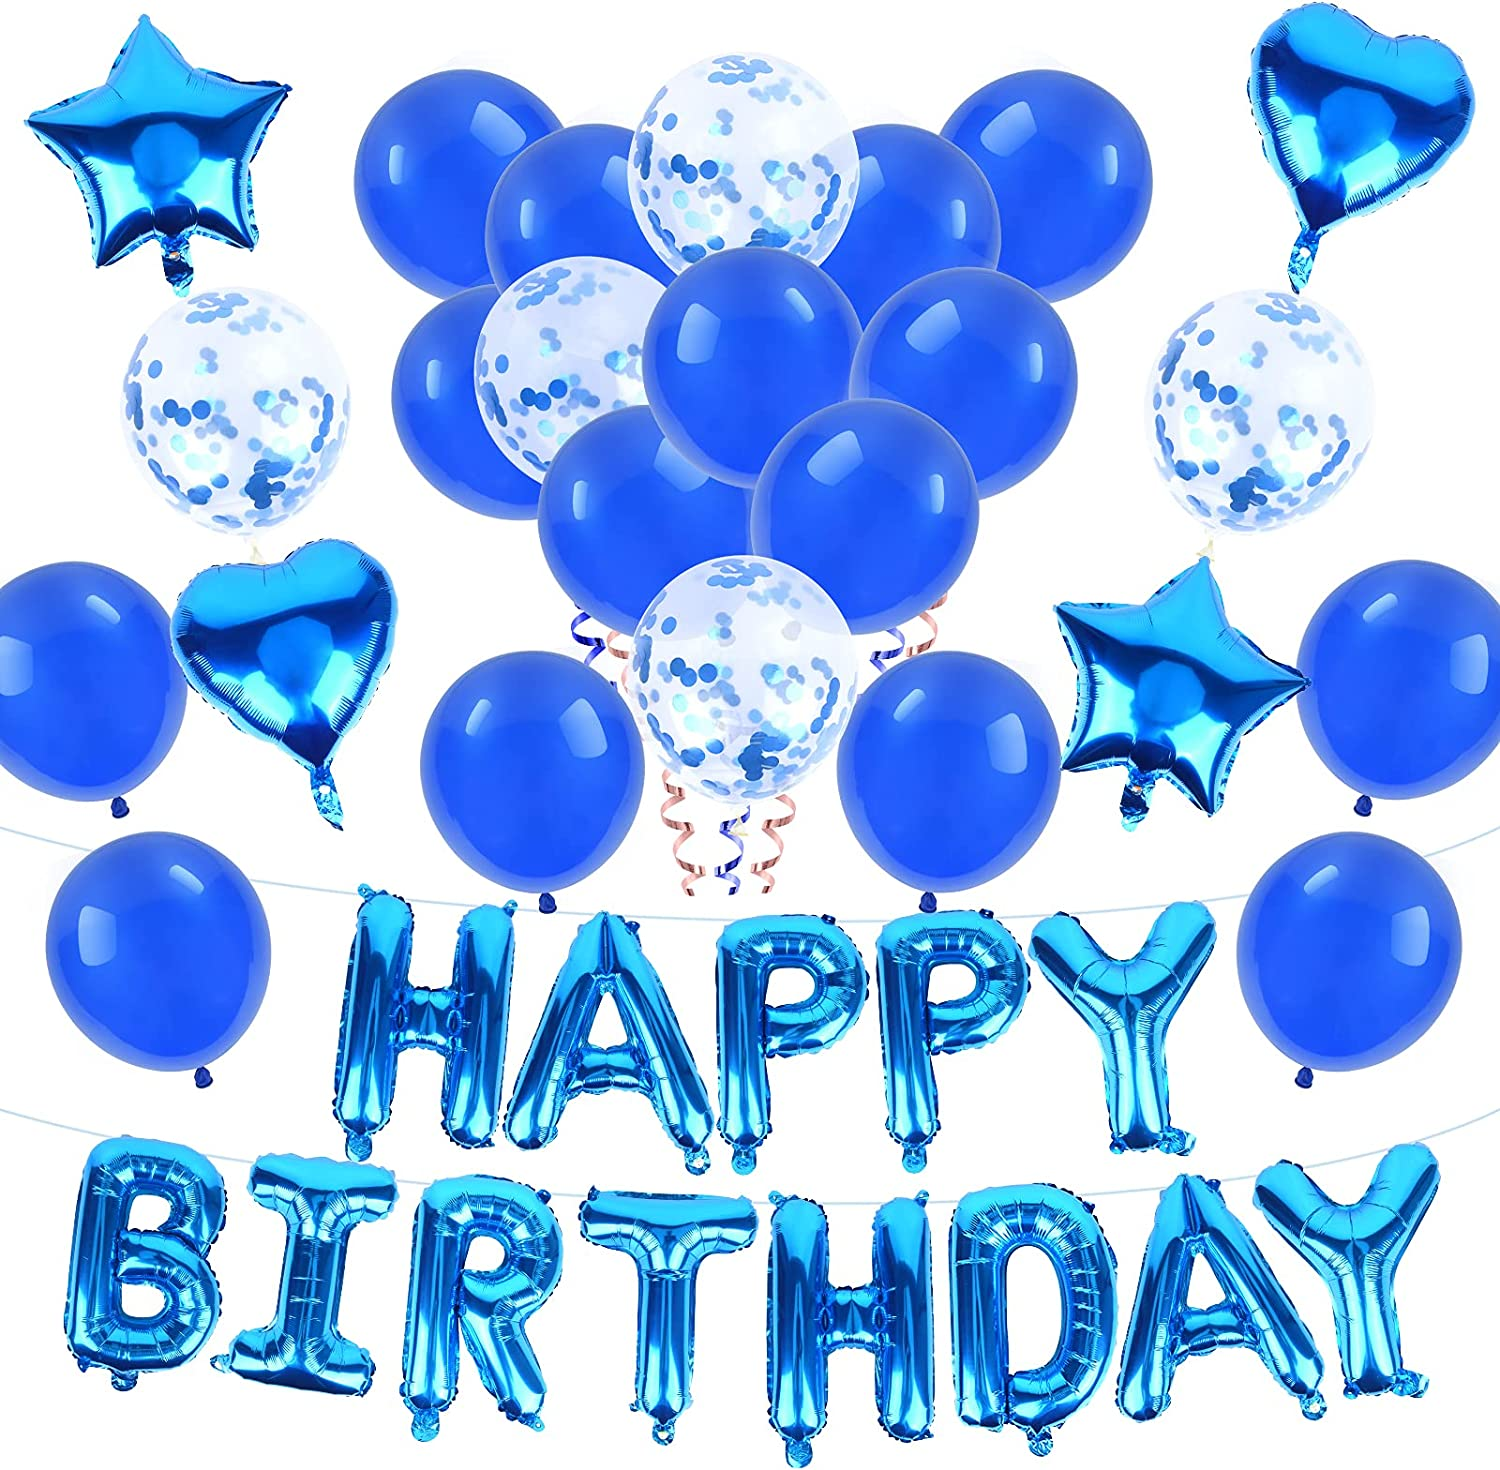 NINE CUBE Blue Birthday Party Selling Long Beach Mall 12 Hap inch Decorations Balloons